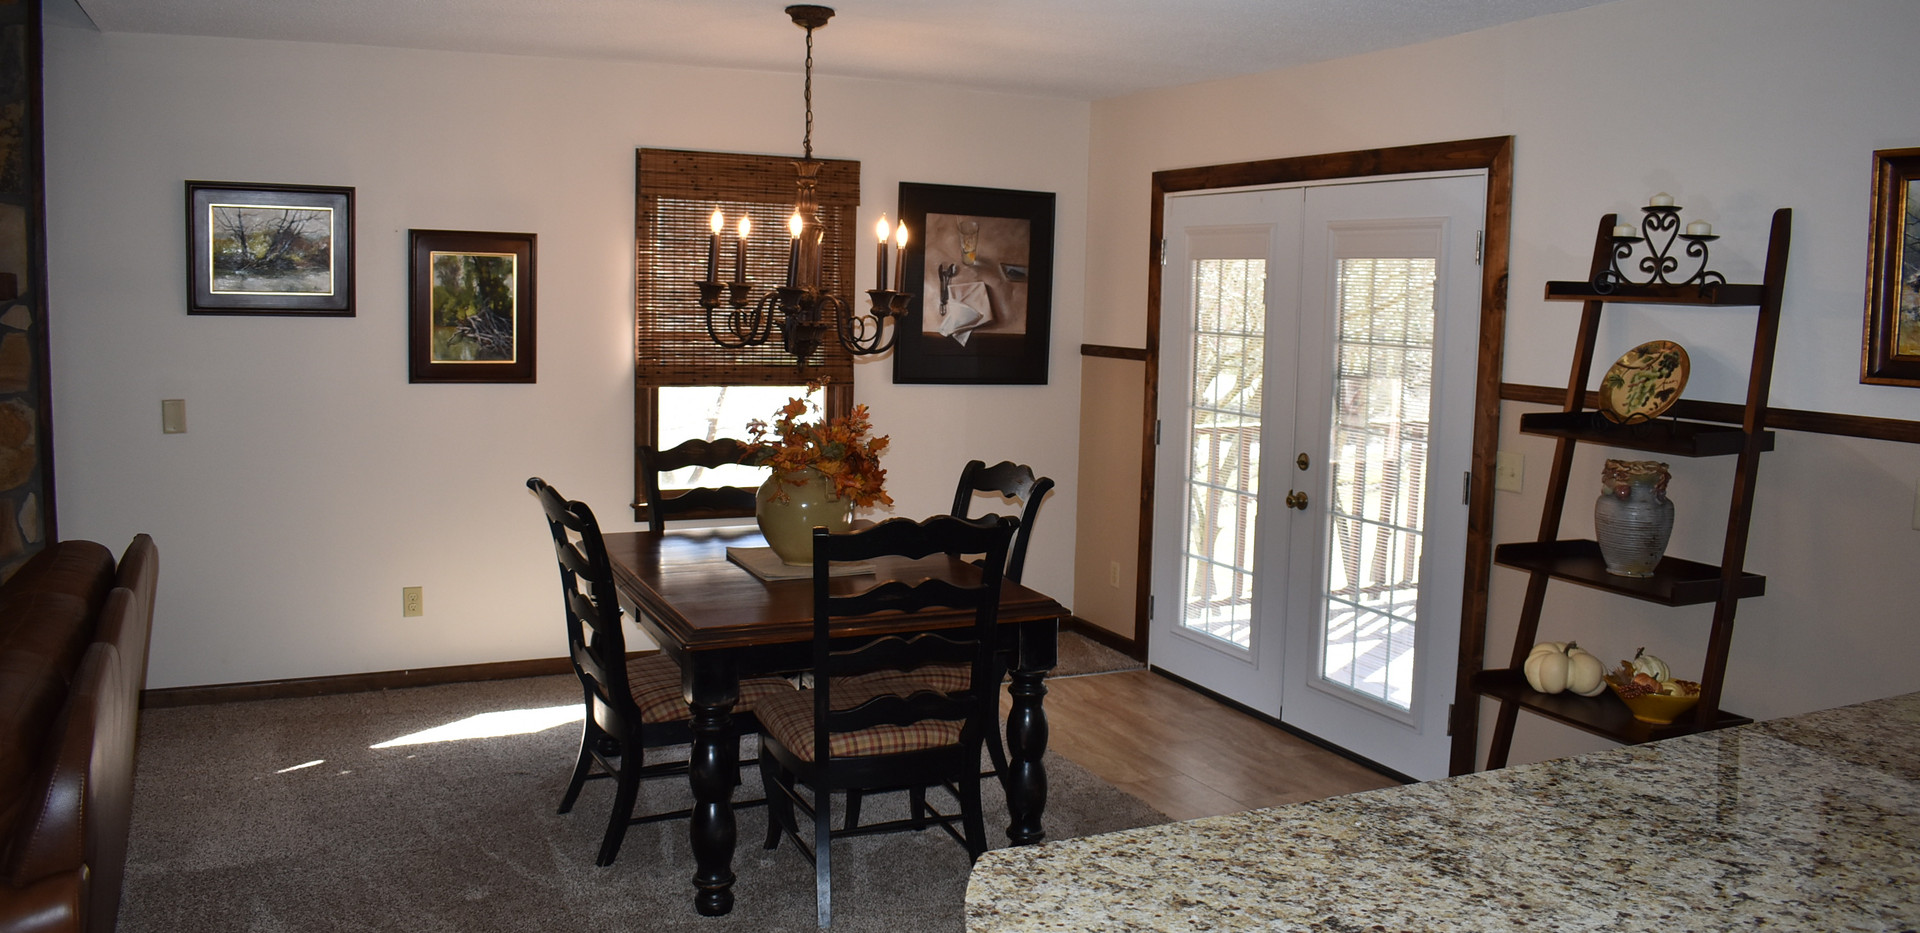 3BR - Lodge - Dining Room